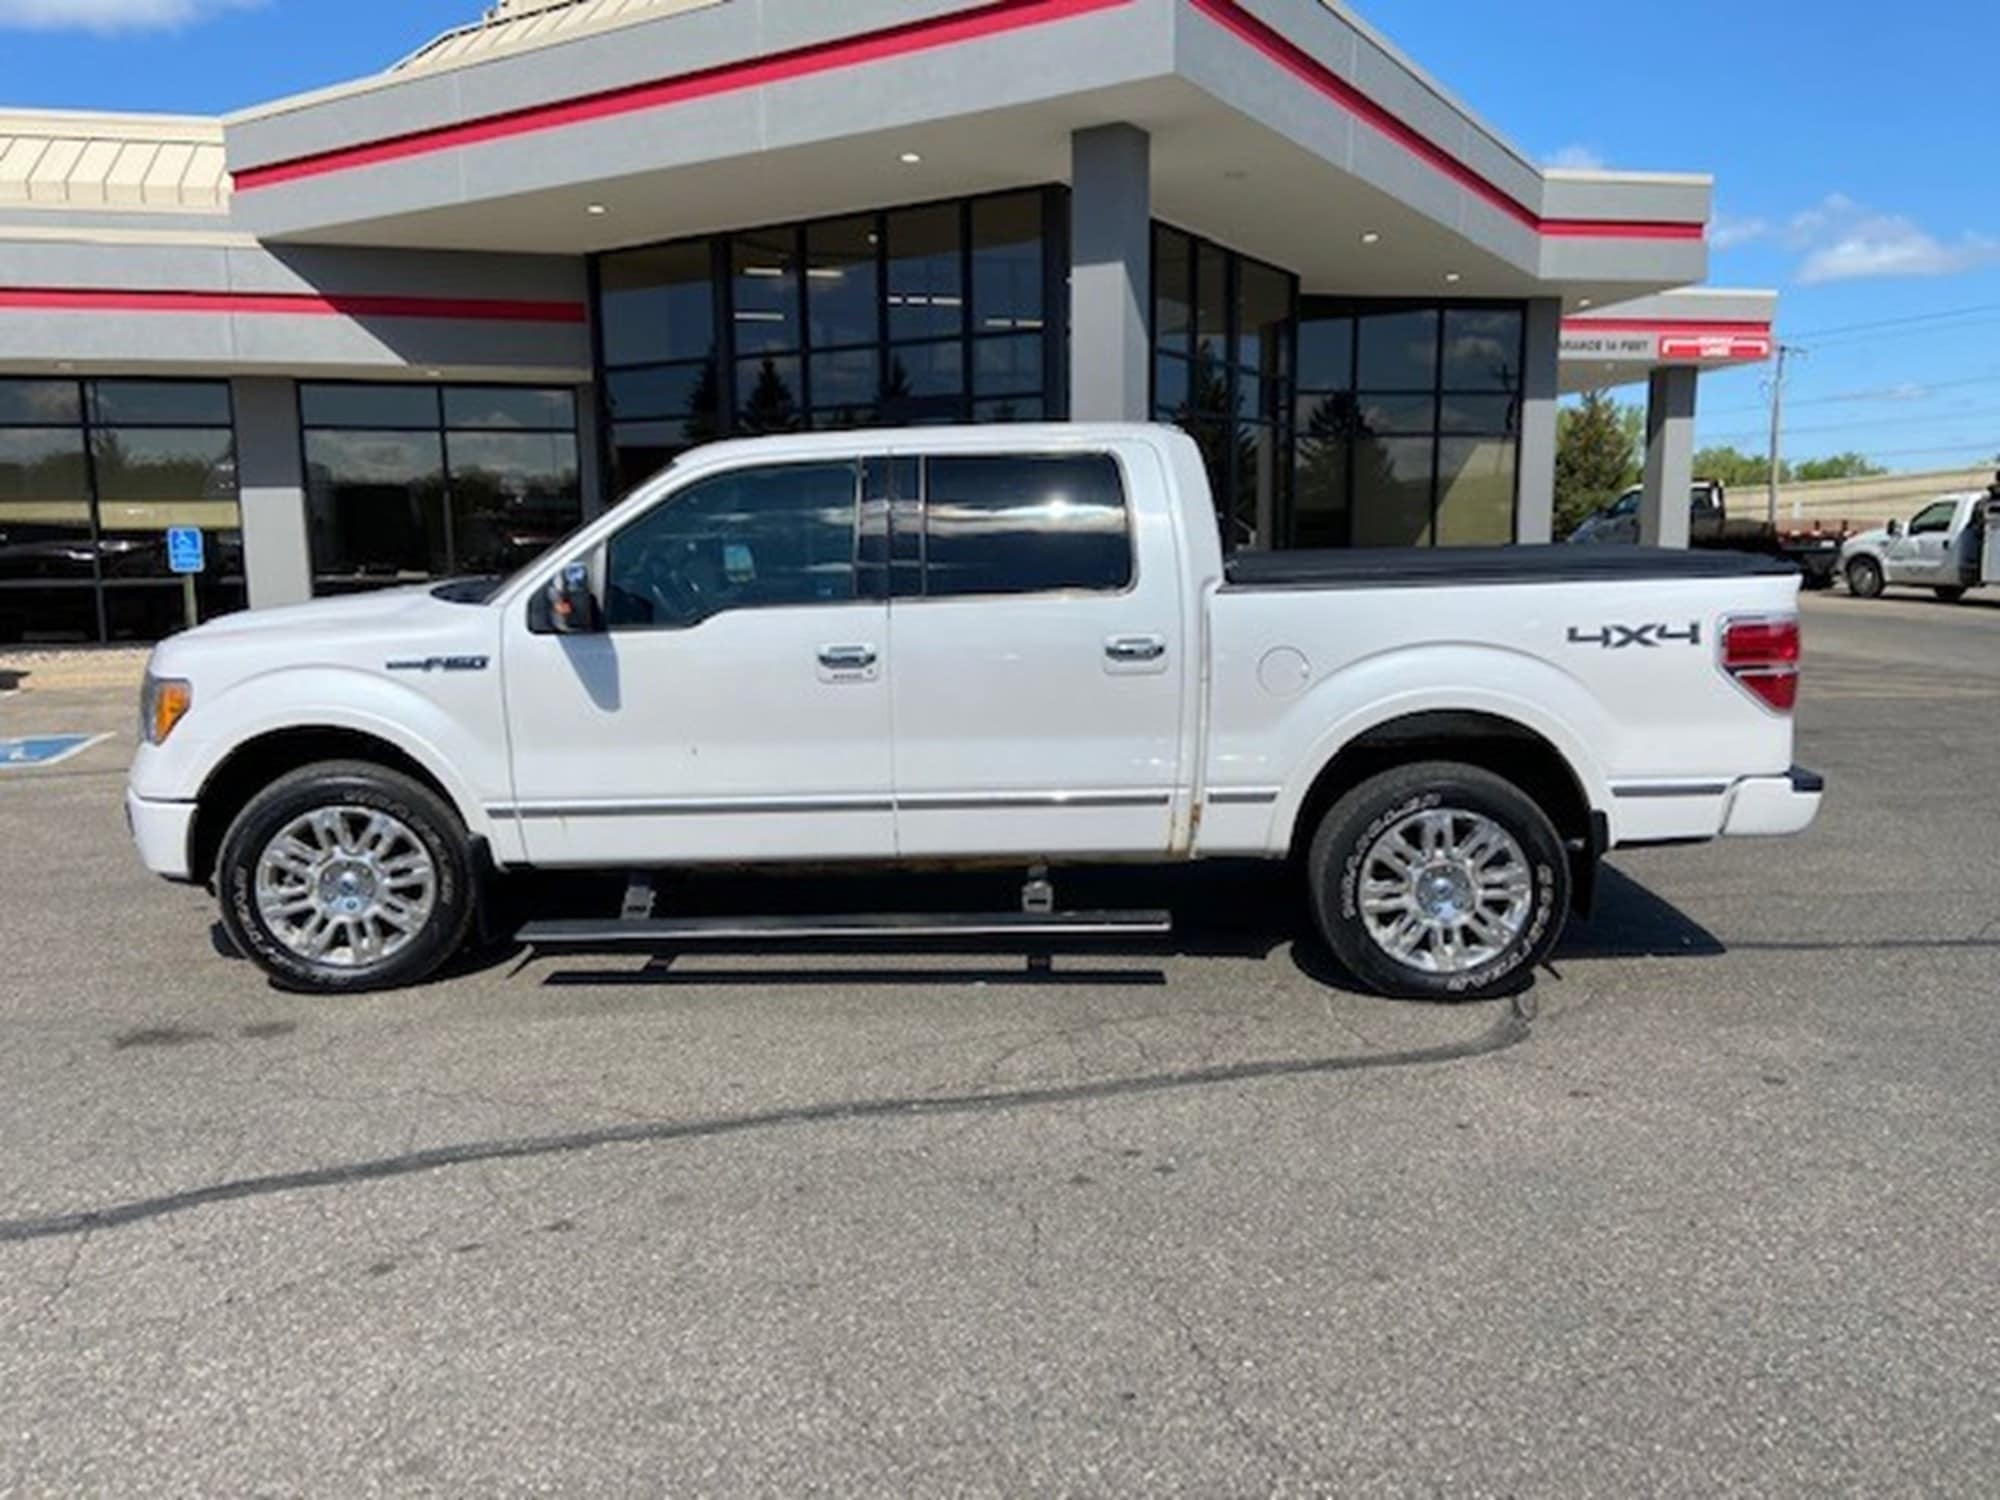 Used 2010 Ford F-150 XL with VIN 1FTFW1EV1AFD04519 for sale in Minneapolis, Minnesota